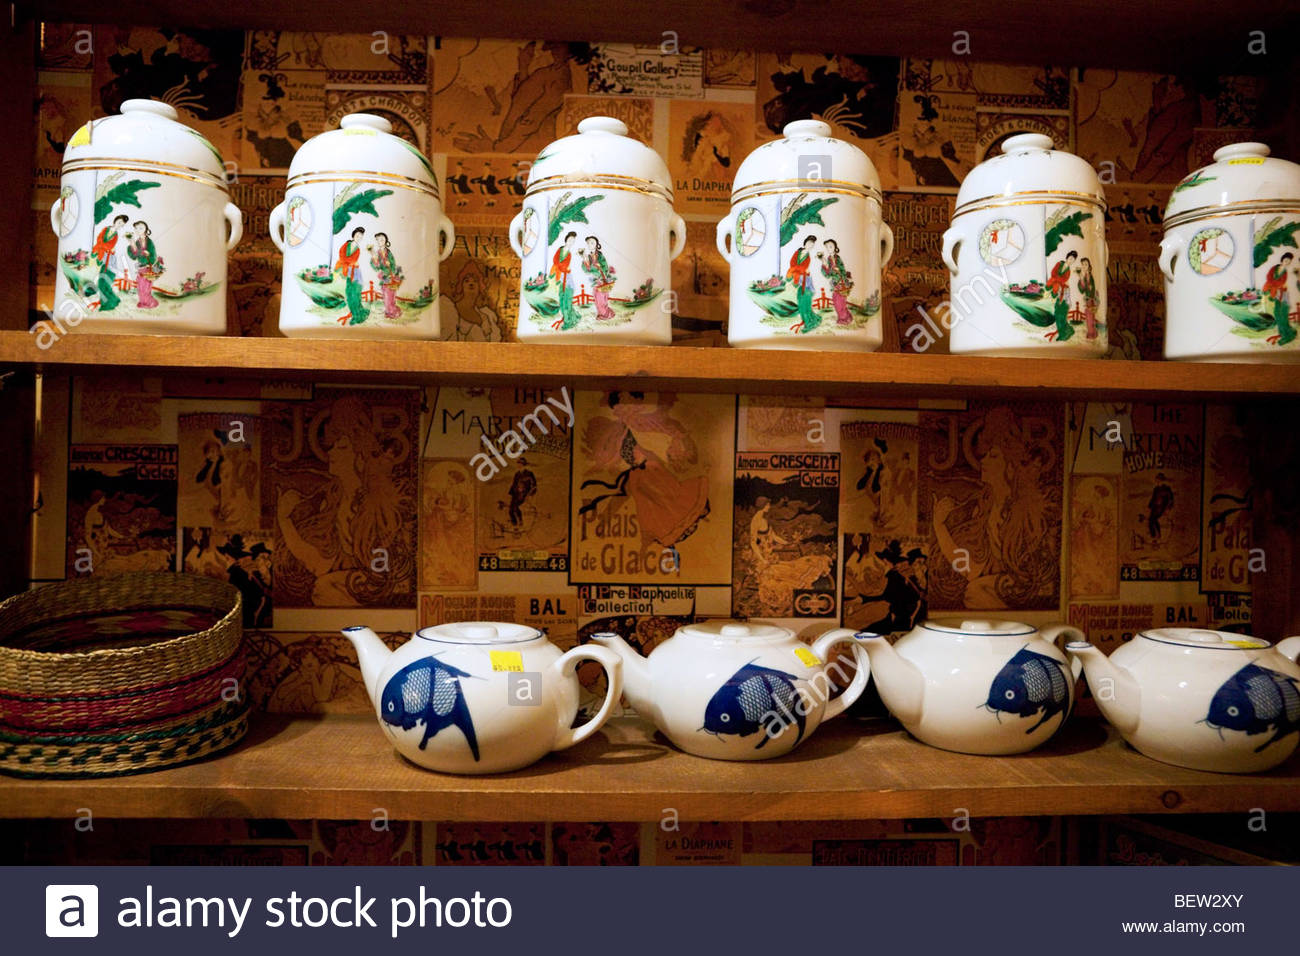 Chinese Teapots - Chinatown Trading Company at Fan Tan Alley, Victoria, B.C. - Stock Image